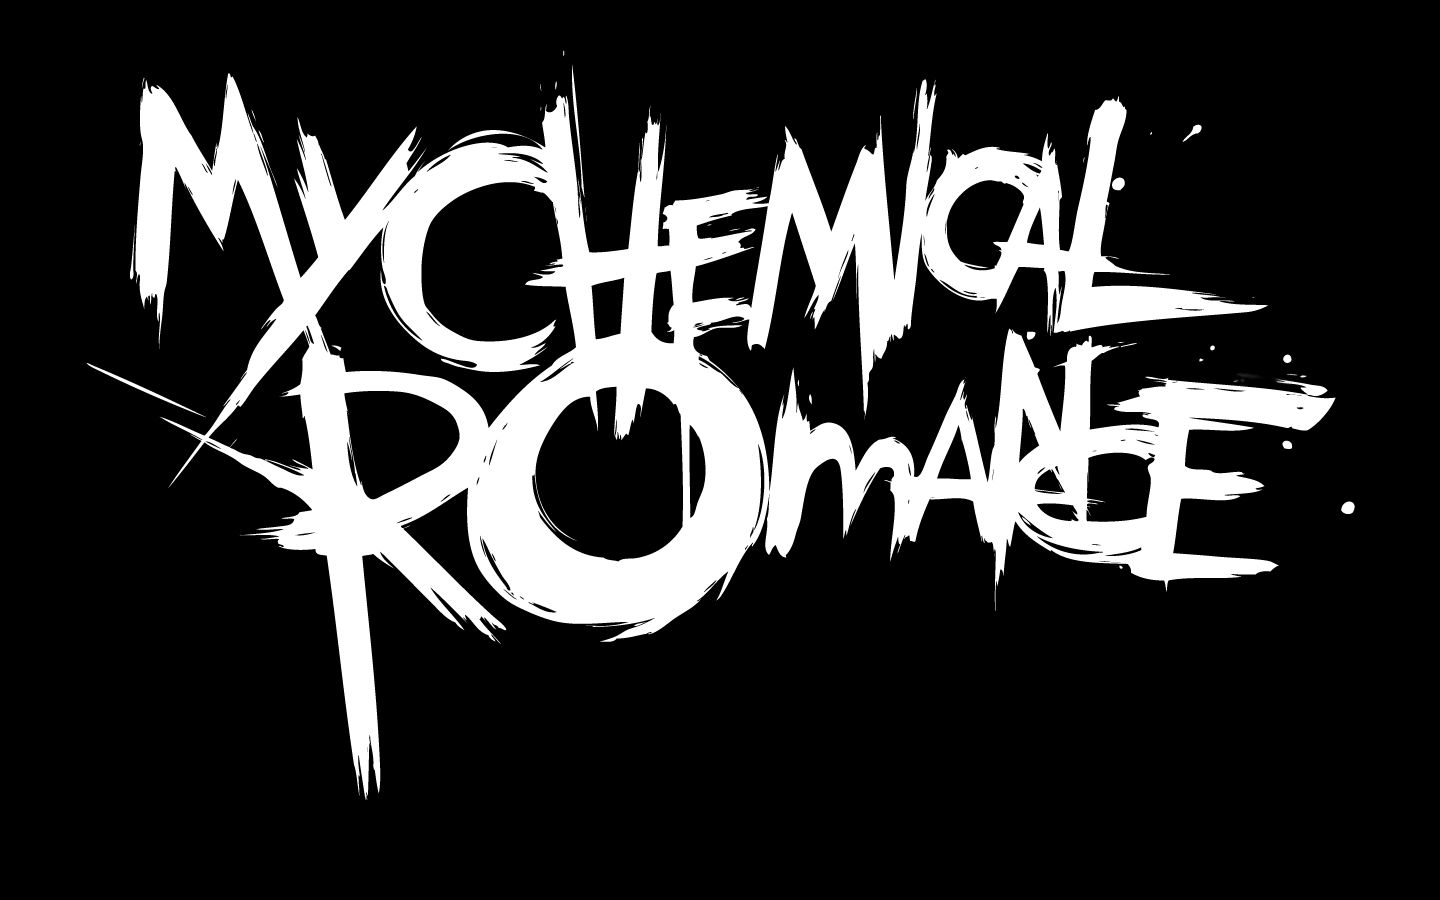 10 Top My Chemical Romance Wallpaper Hd FULL HD 1080p For